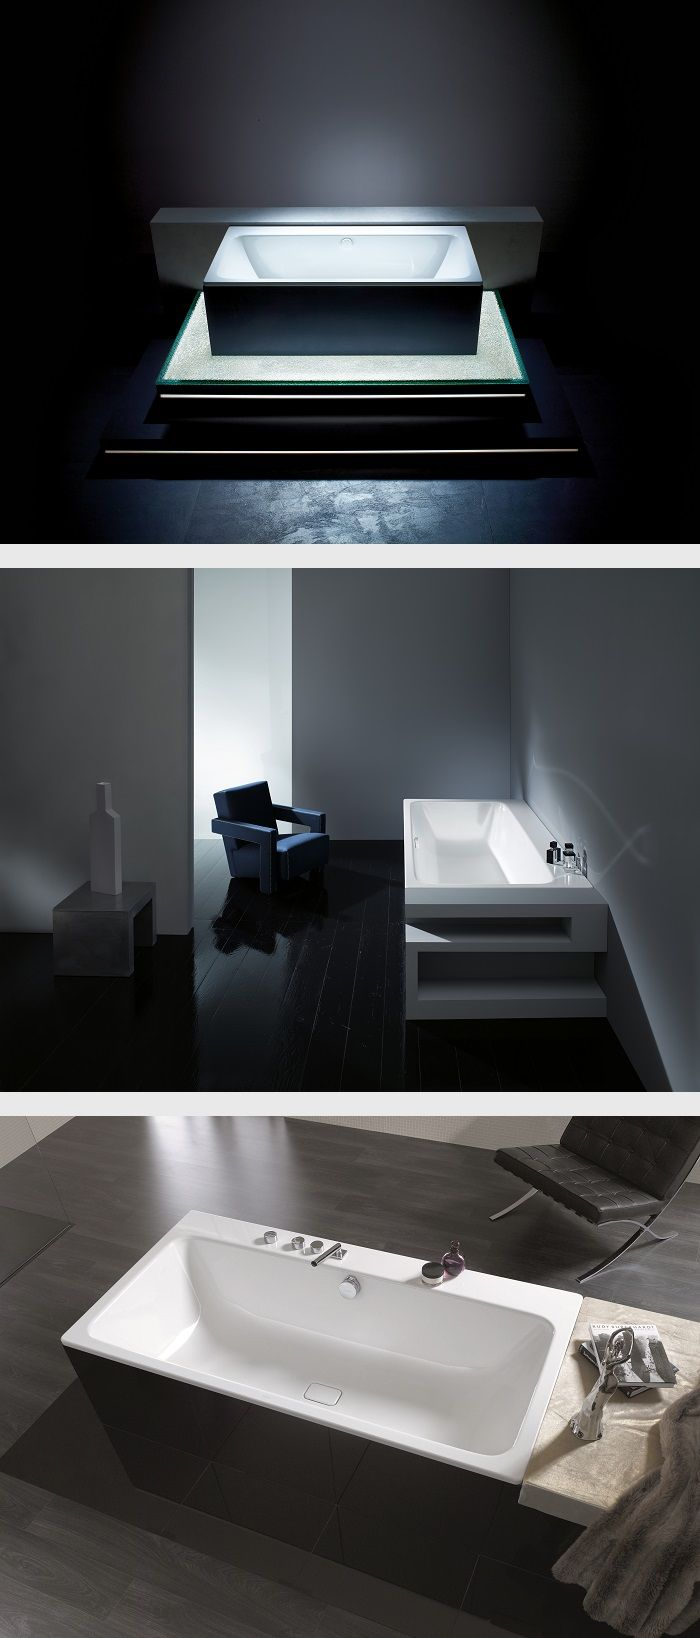 Kaldewei Badewanne Bassino A Bath With A Comfort Zone With Its Generously Proportioned